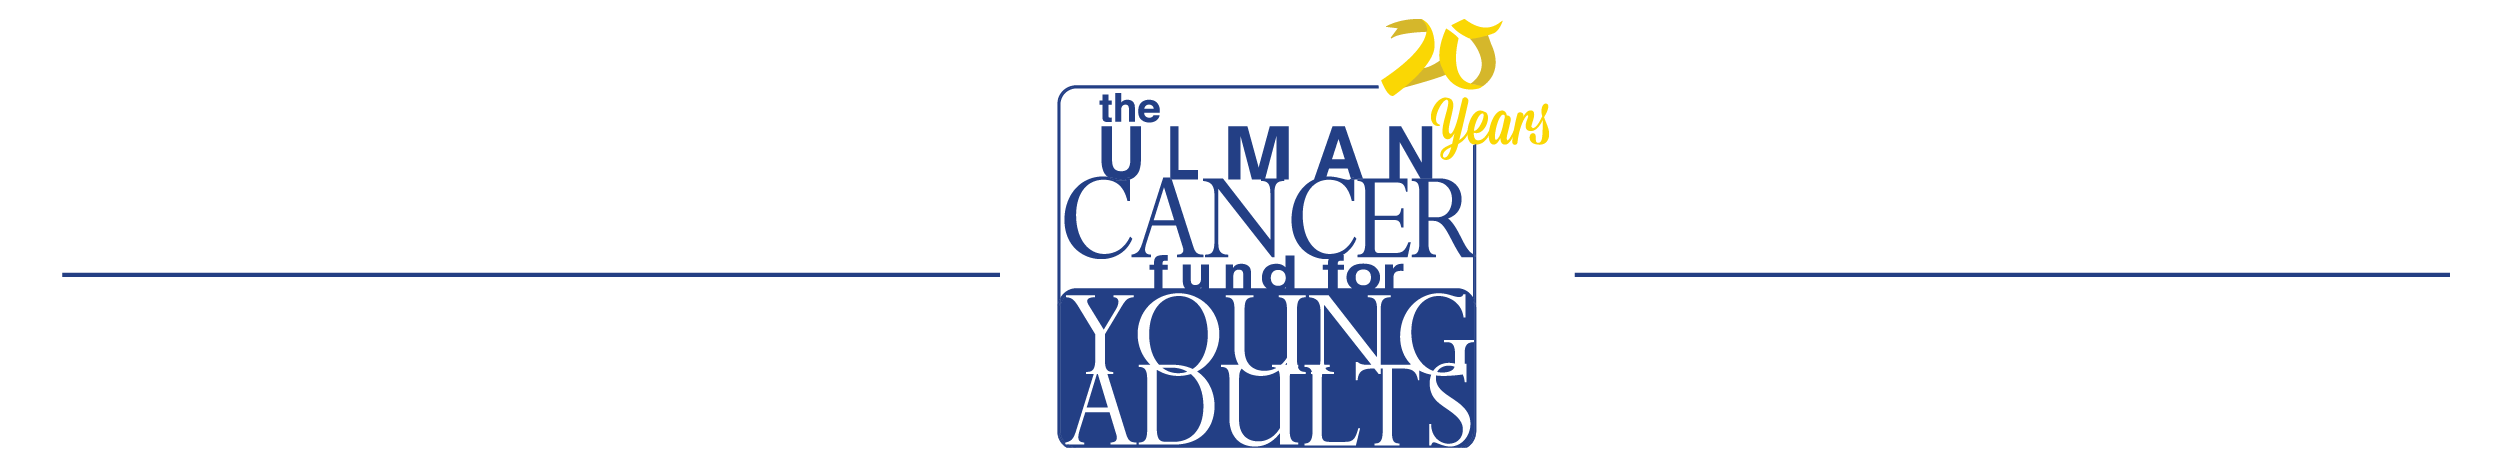 The Ulman Cancer Fund for Young Adults – Newsroom